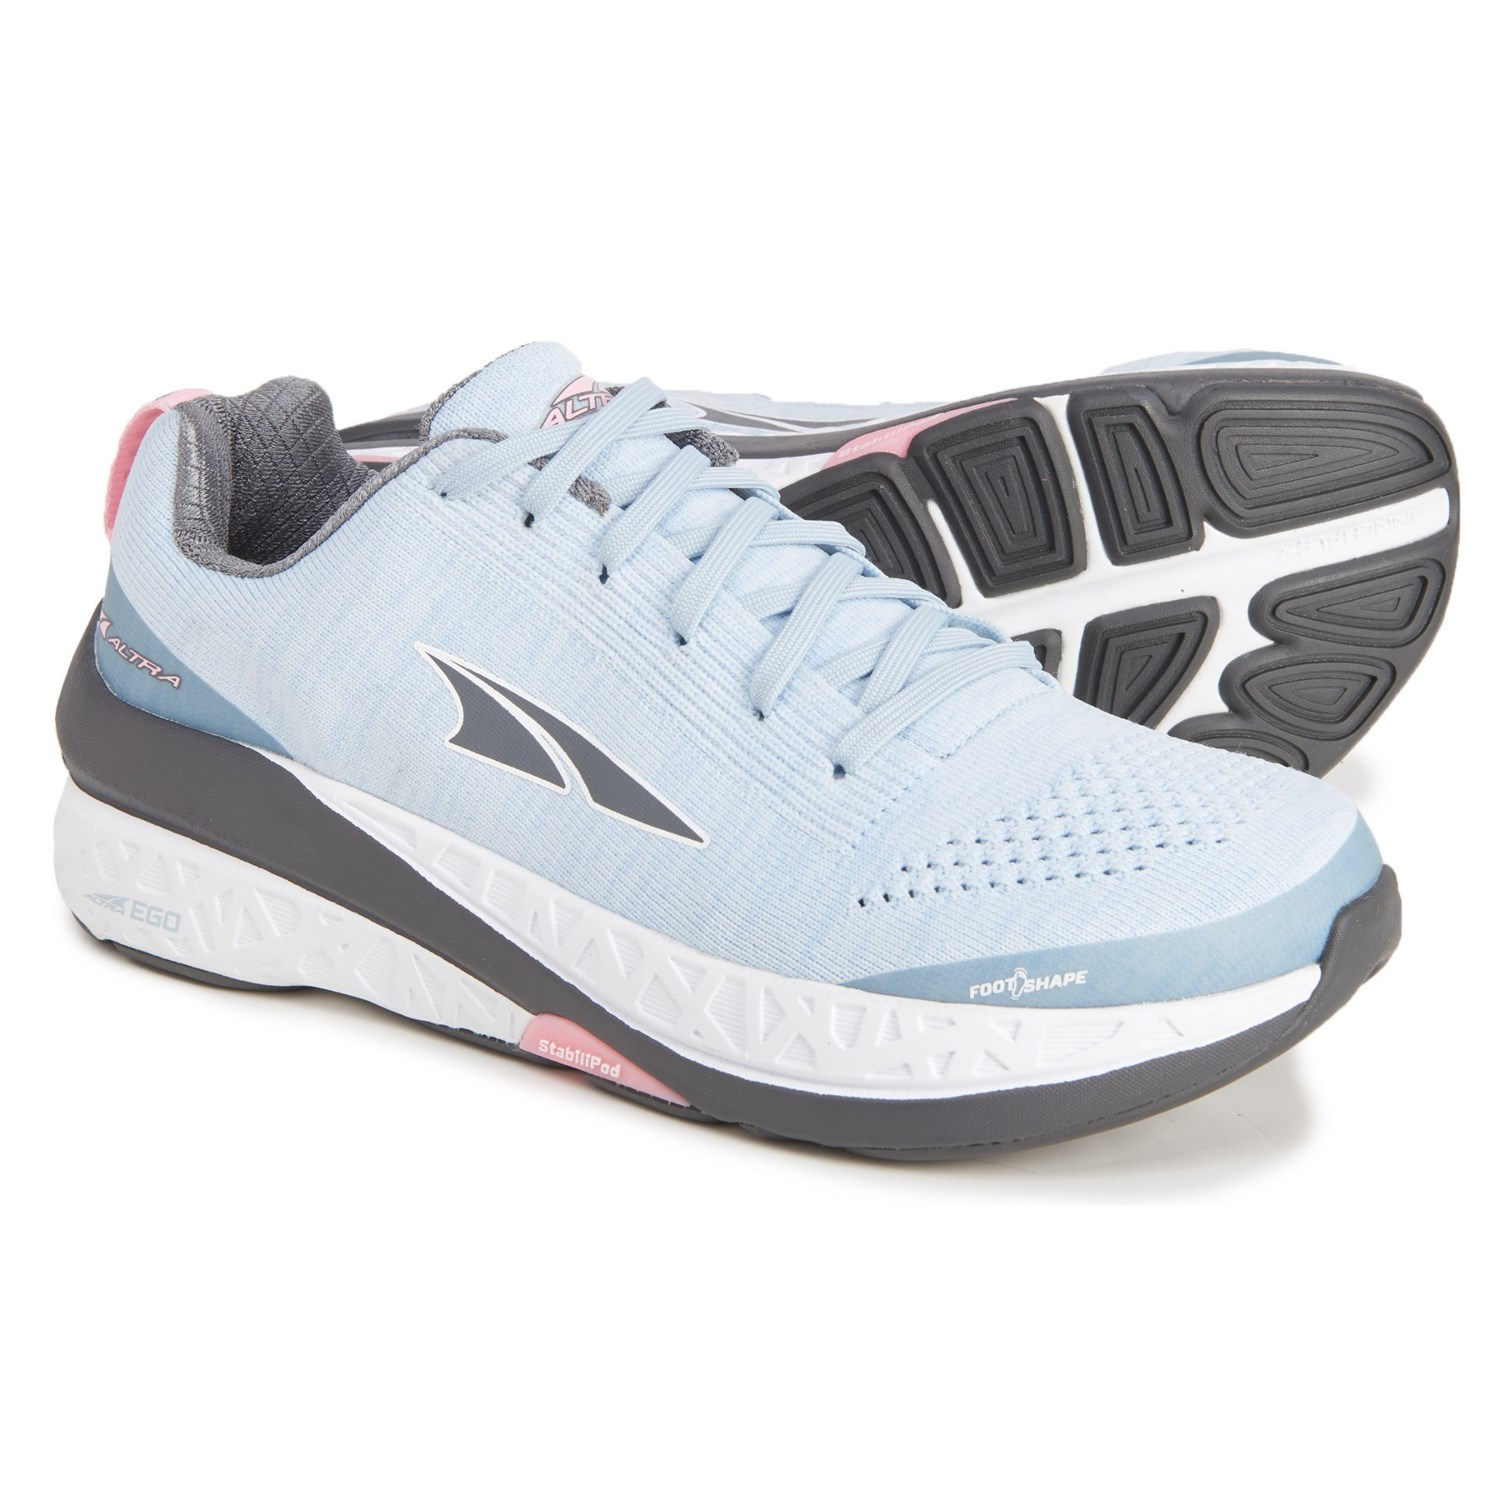 Altra Paradigm 4.5 Running Shoes (For